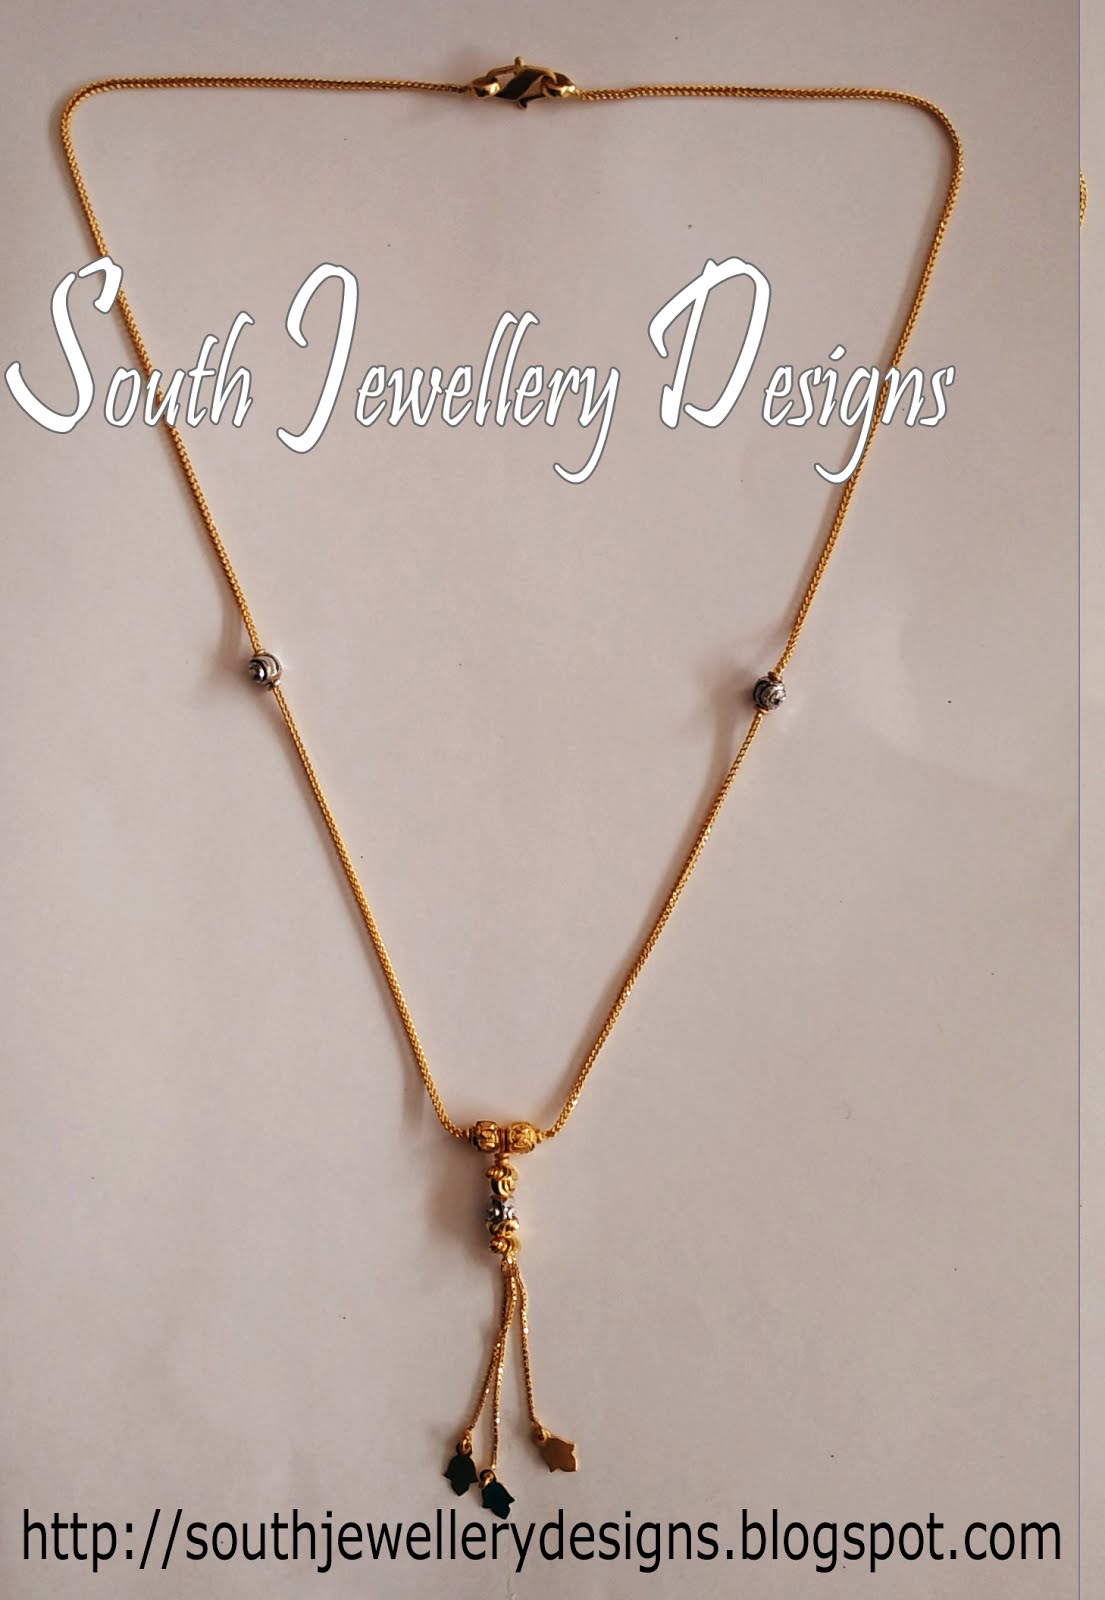 South Jewellery Designs: Collections of Necklaces